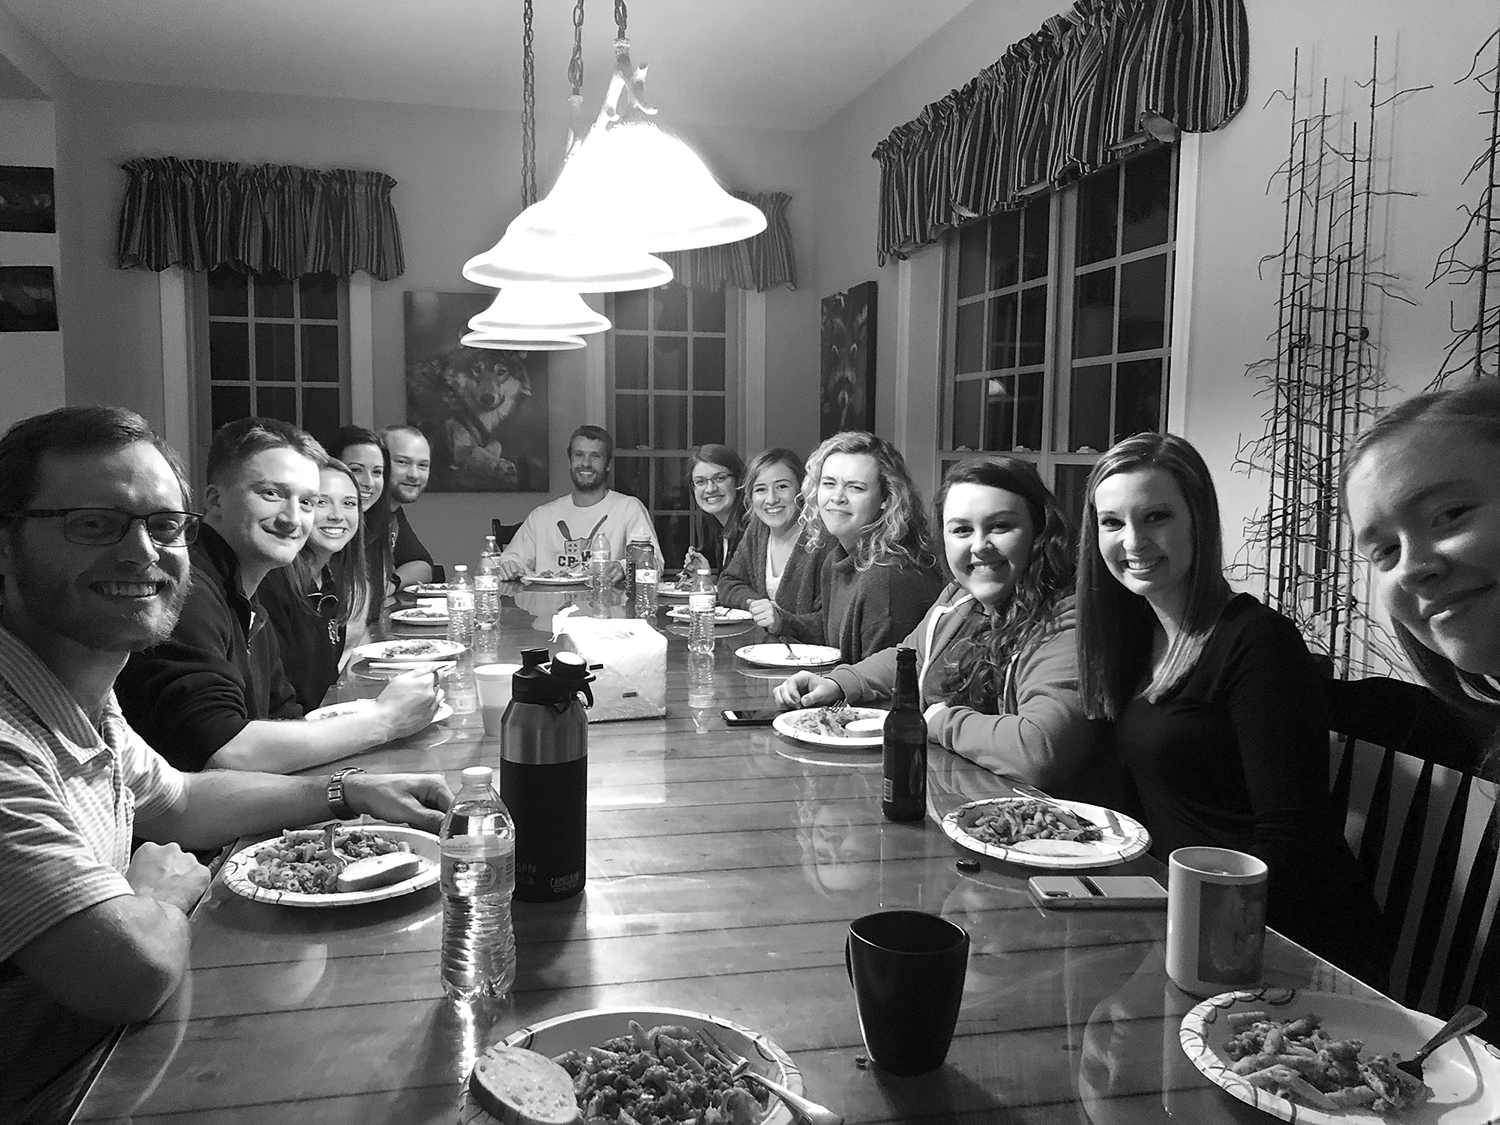 Young Adult Dinner Image.jpg